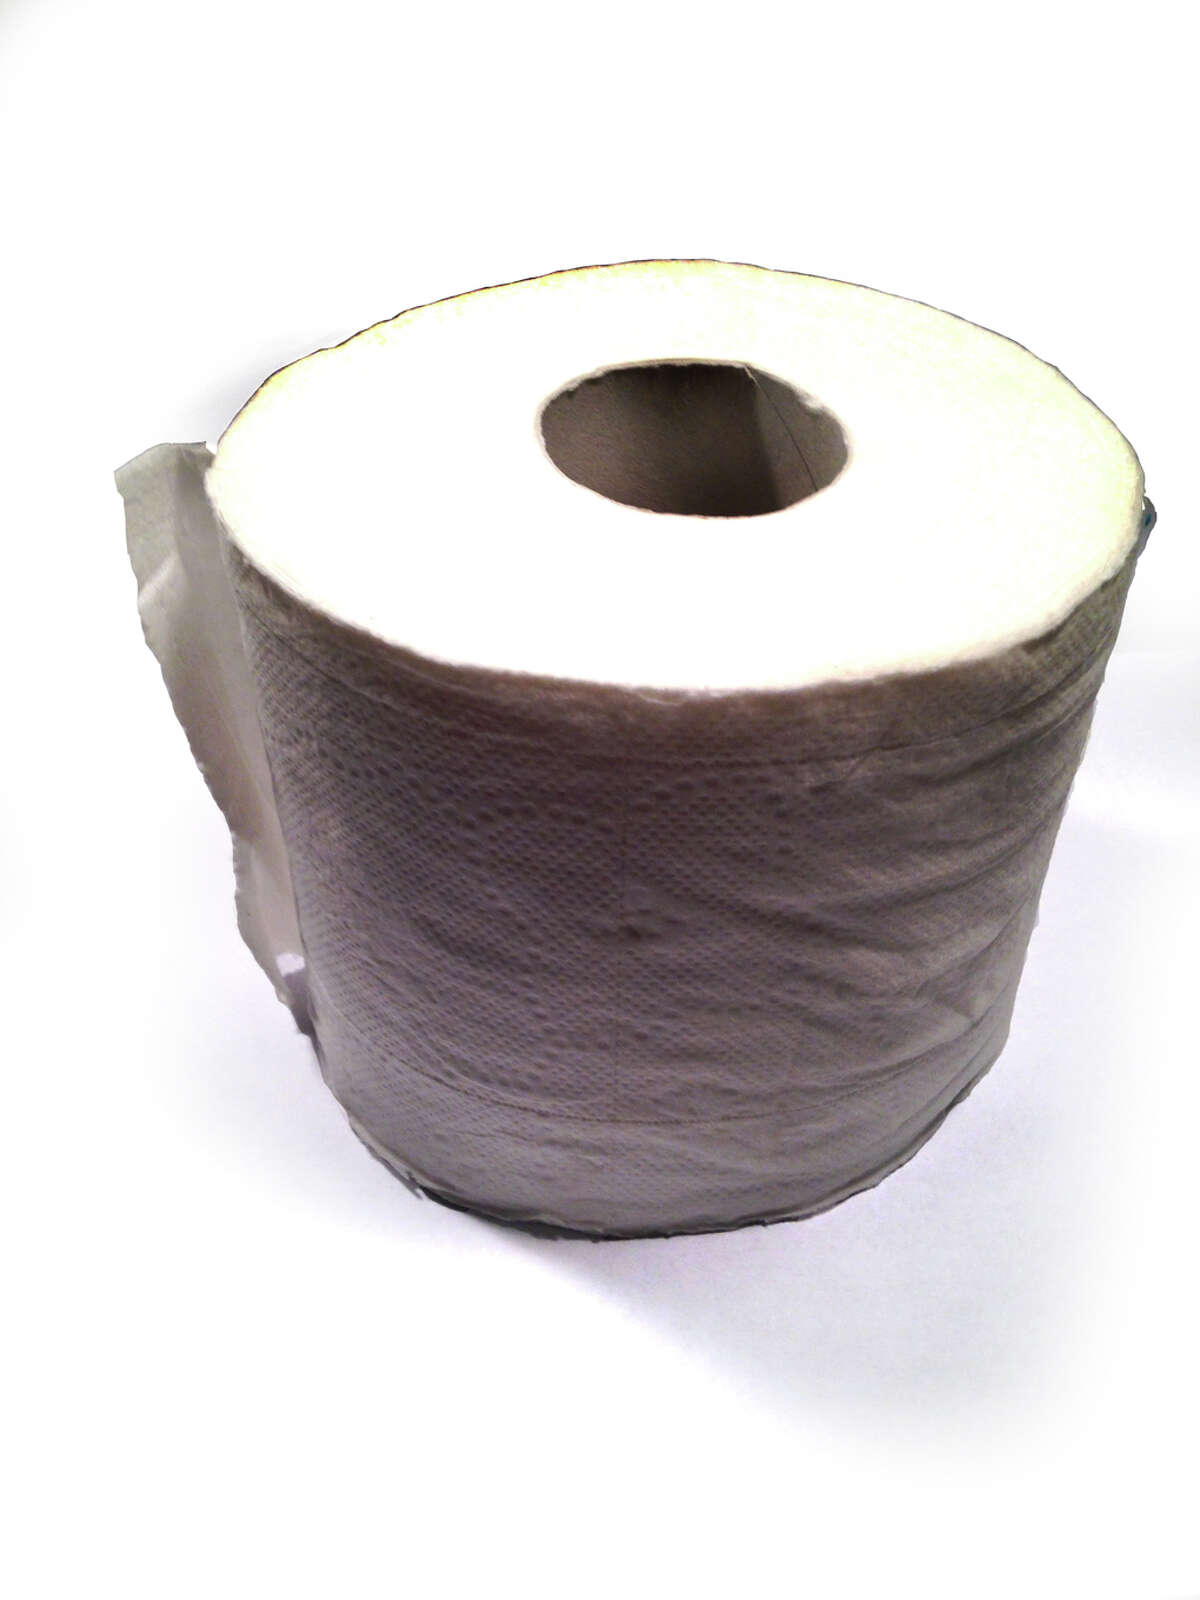 Toliet Paper roll pumpkin: Decide how large a pumpkin you want to make. Two rolls will create a large pumpkin, one roll a medium sized and half a roll makes a small pumpkin. Then select the material to wrap the rolls with. Test the size of your material to make sure it won?t be too much for the number of rolls. (Carin Lane / Times Union)